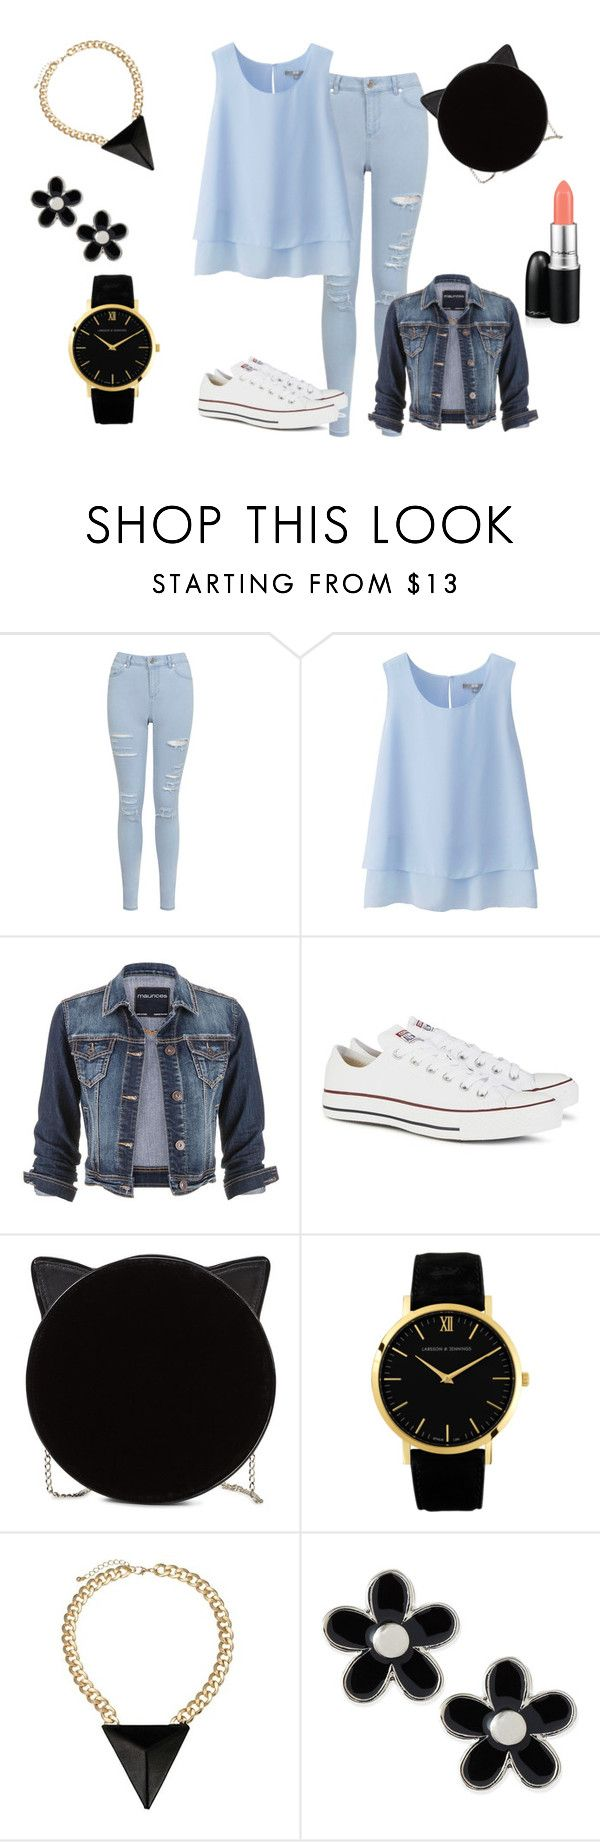 """""""wiosna 2015"""" by dagusia112 on Polyvore featuring moda, Miss Selfridge, Uniqlo, maurices, Converse, Charlotte Olympia, Larsson & Jennings, Marc by Marc Jacobs i MAC Cosmetics"""